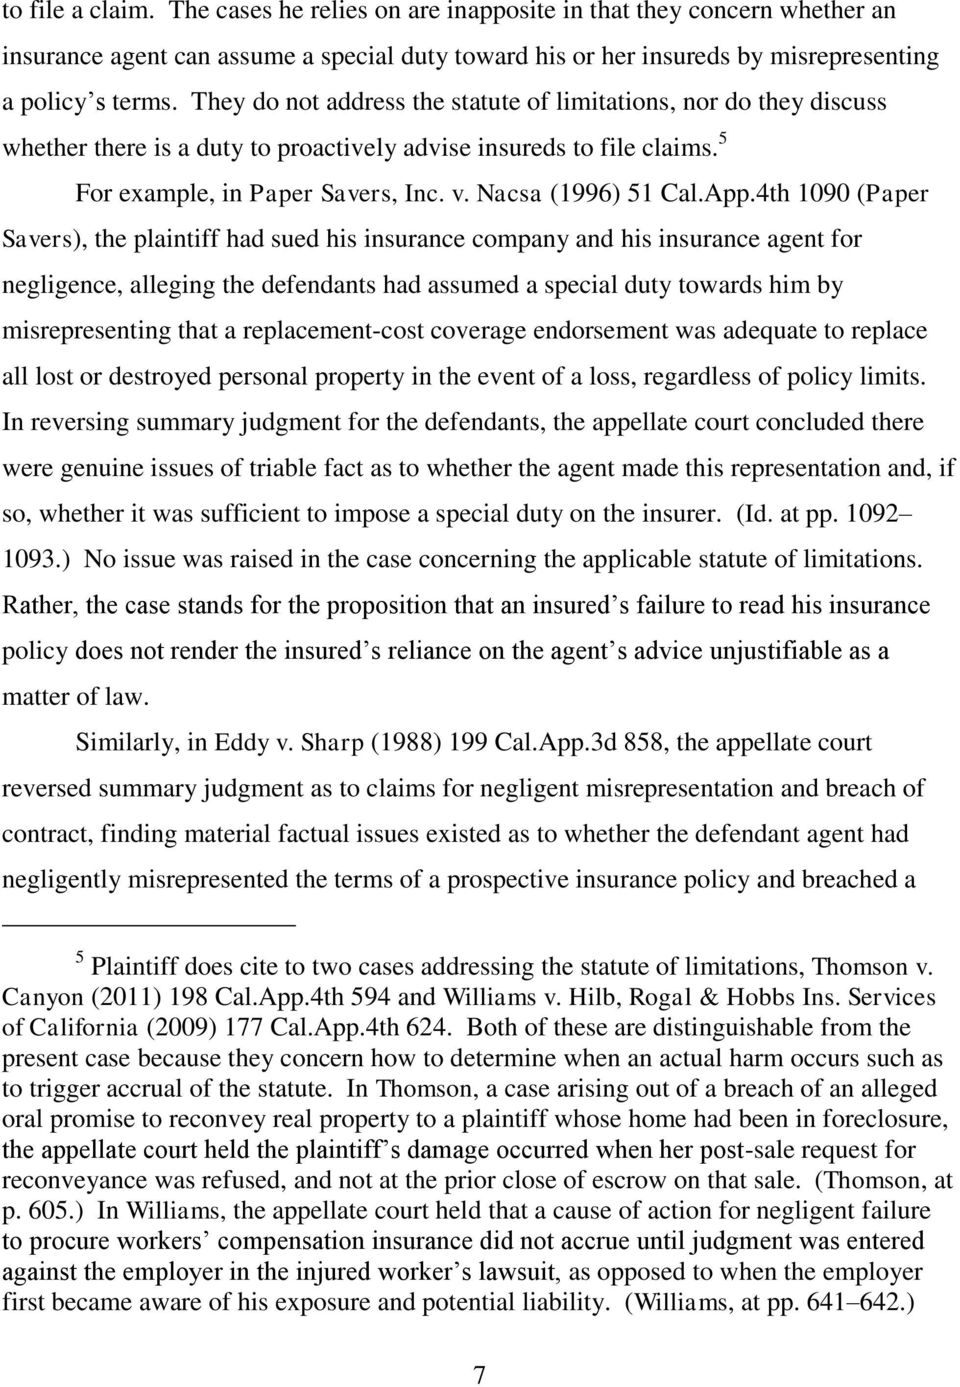 App.4th 1090 (Paper Savers), the plaintiff had sued his insurance company and his insurance agent for negligence, alleging the defendants had assumed a special duty towards him by misrepresenting